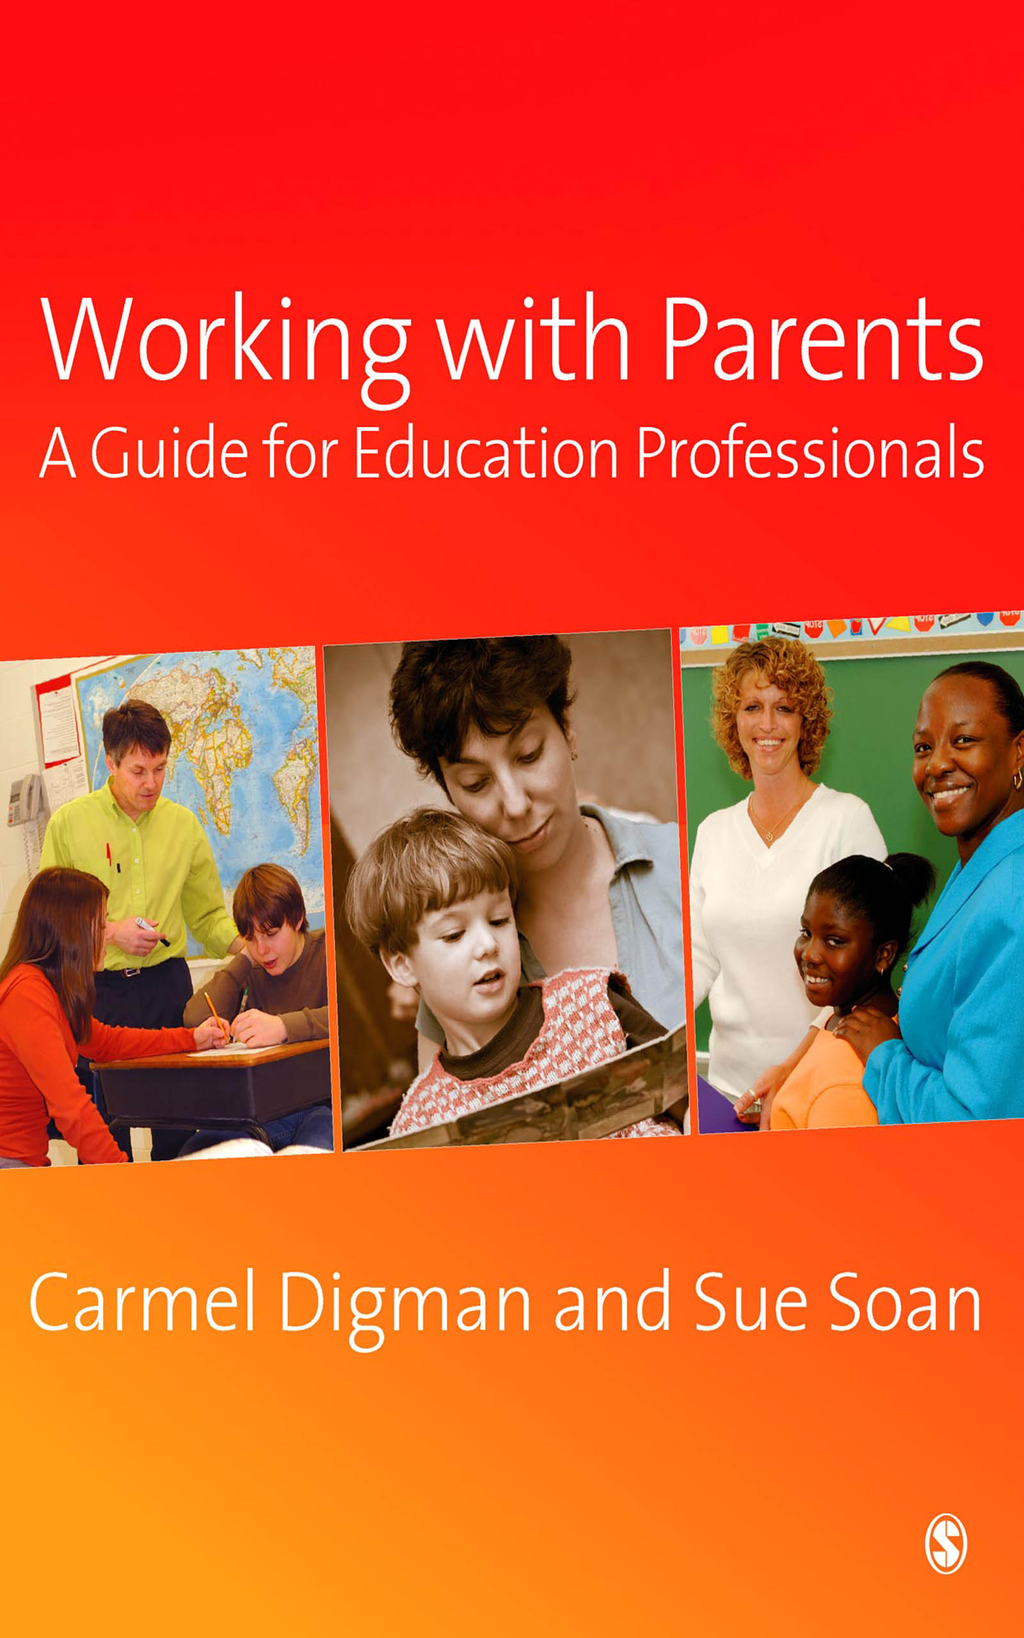 Working with Parents A Guide for Education Professionals